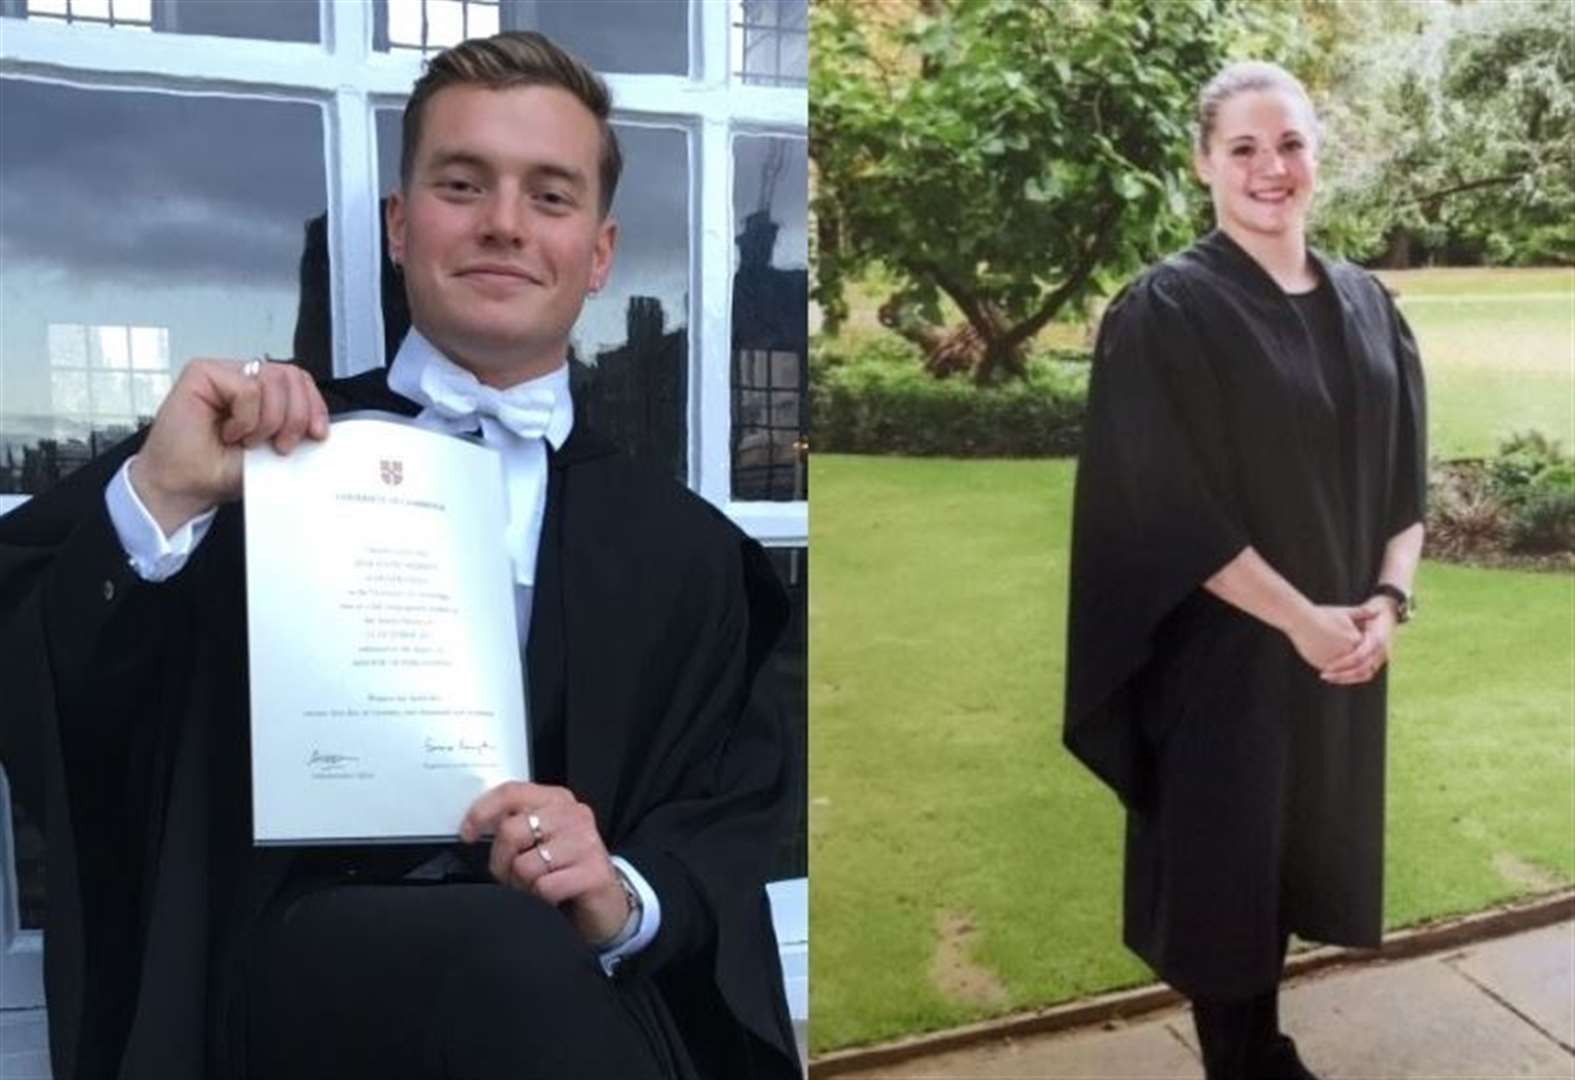 Cambridge graduates Jack Merritt and Saskia Jones died after single stab wounds to chest, inquest hears